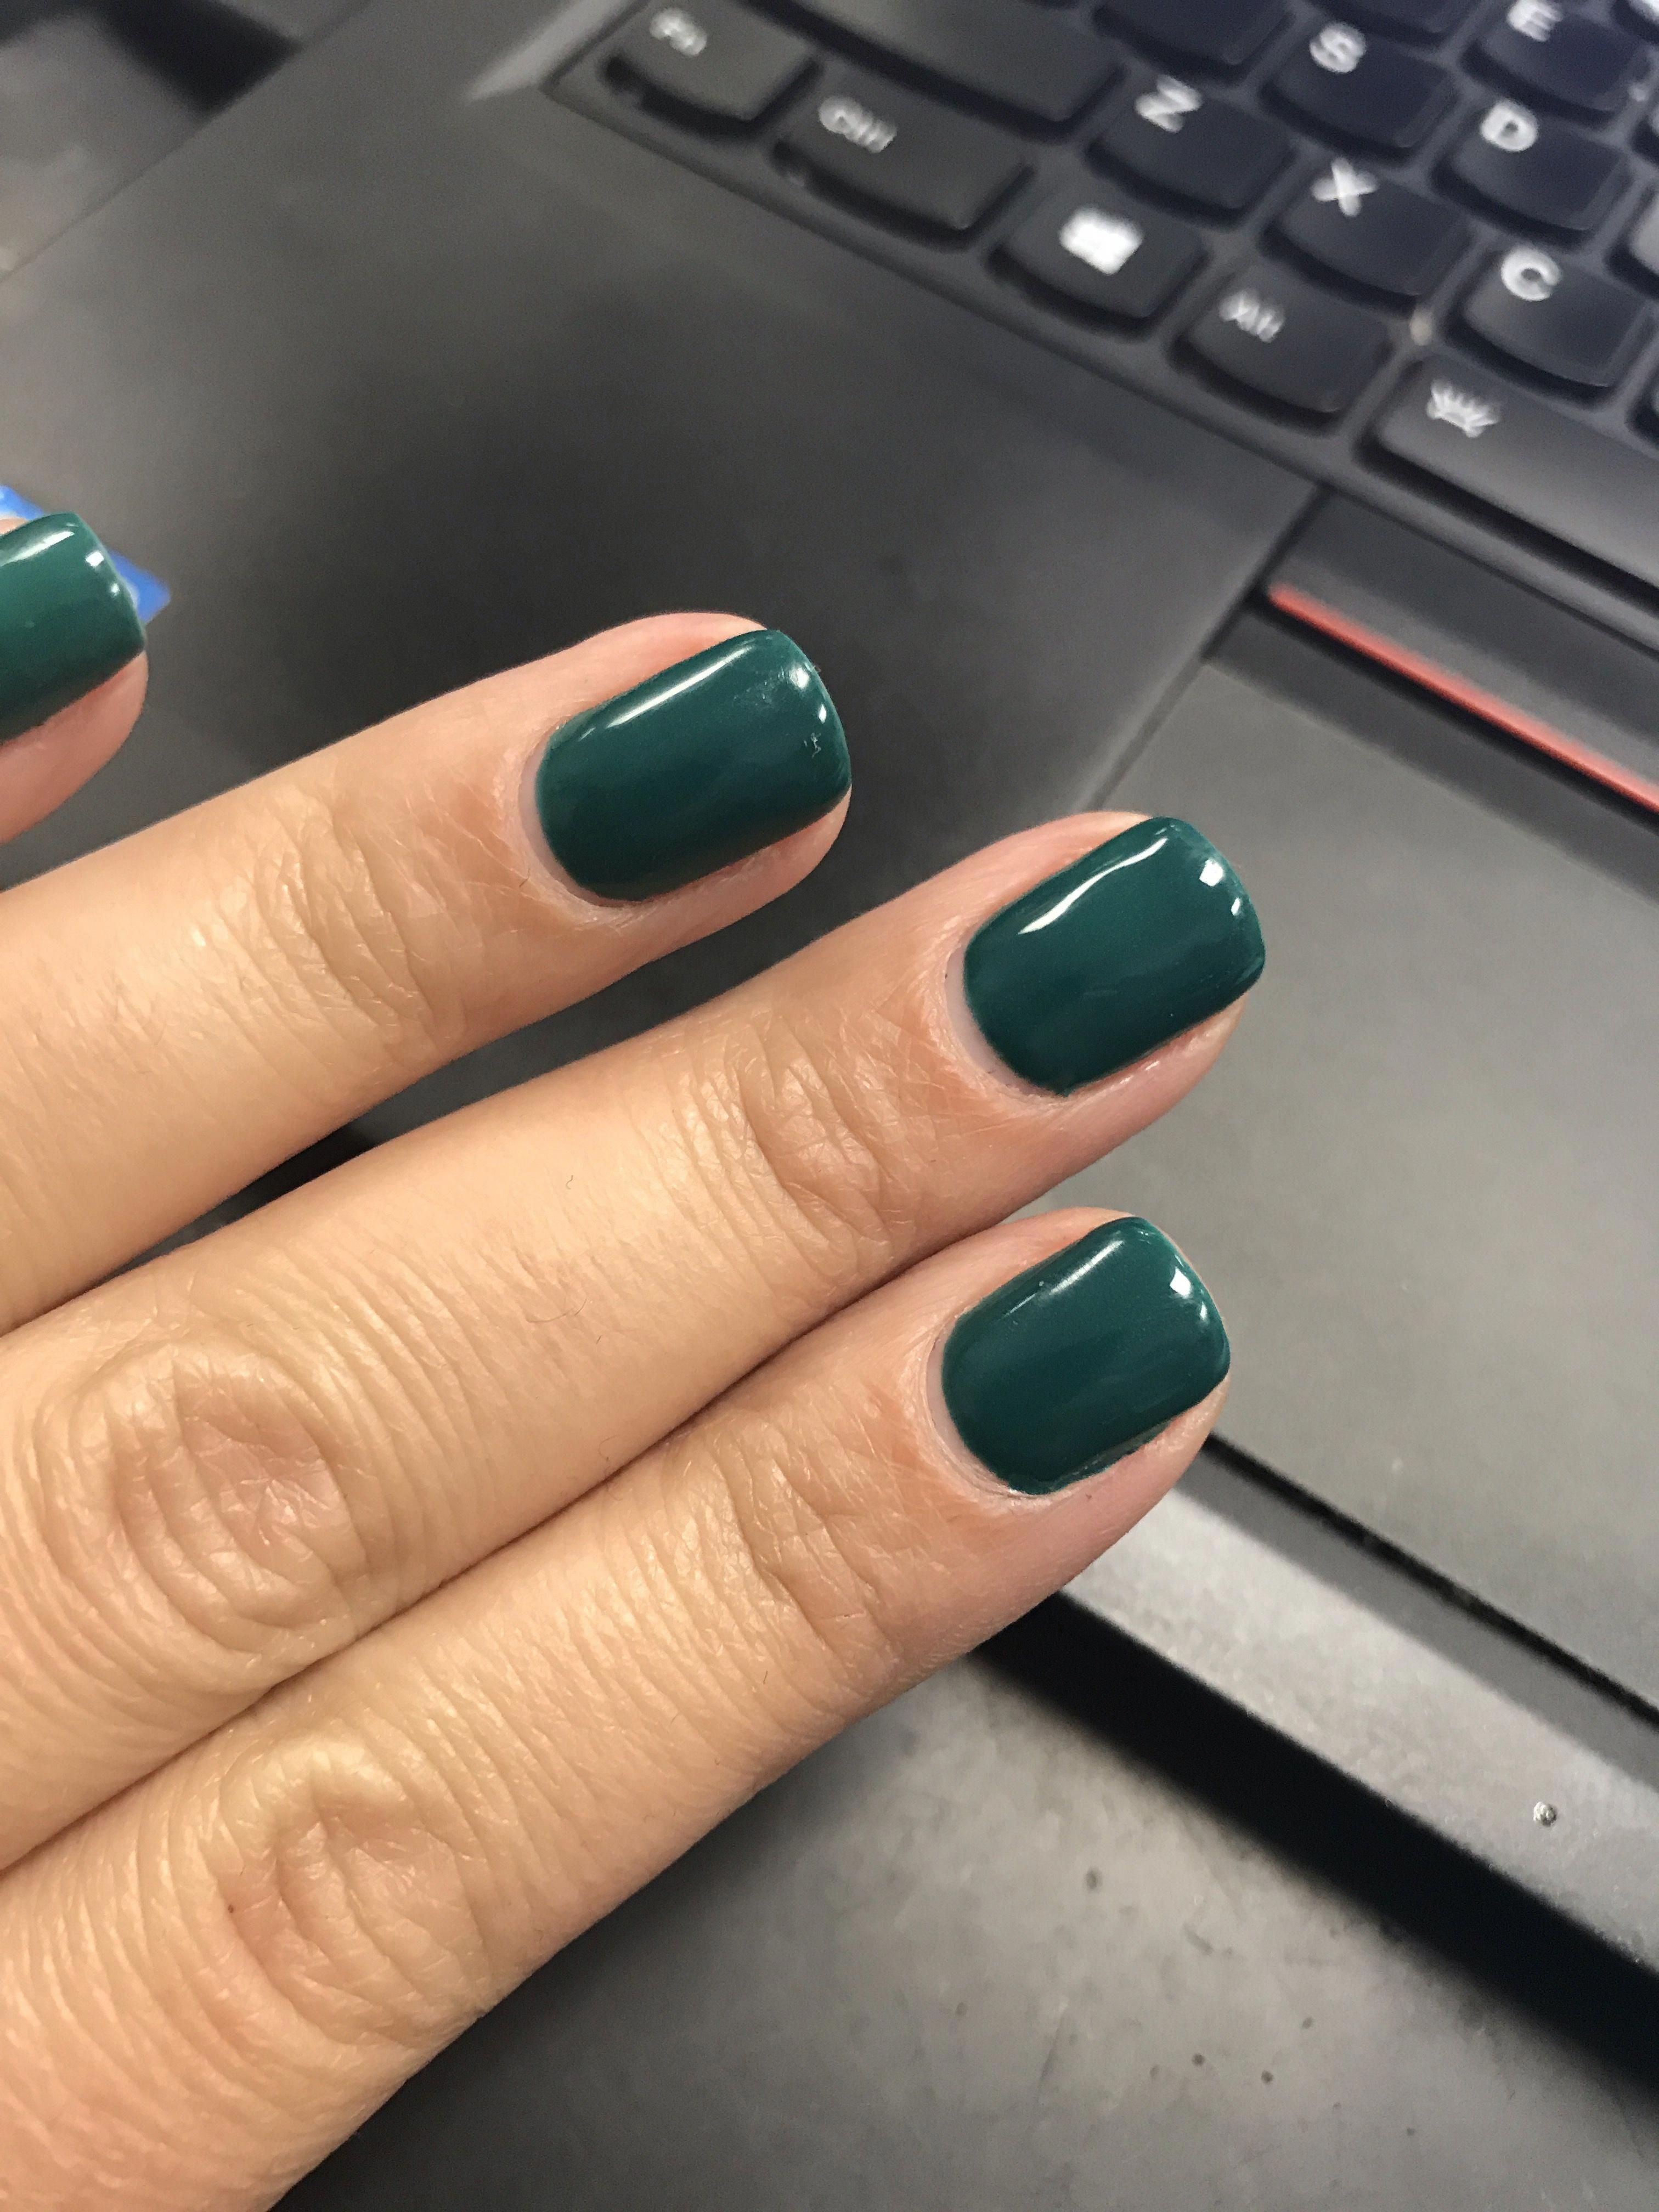 Nails Gel We Adopt Or Not With Images Gel Nails Nails Manicure